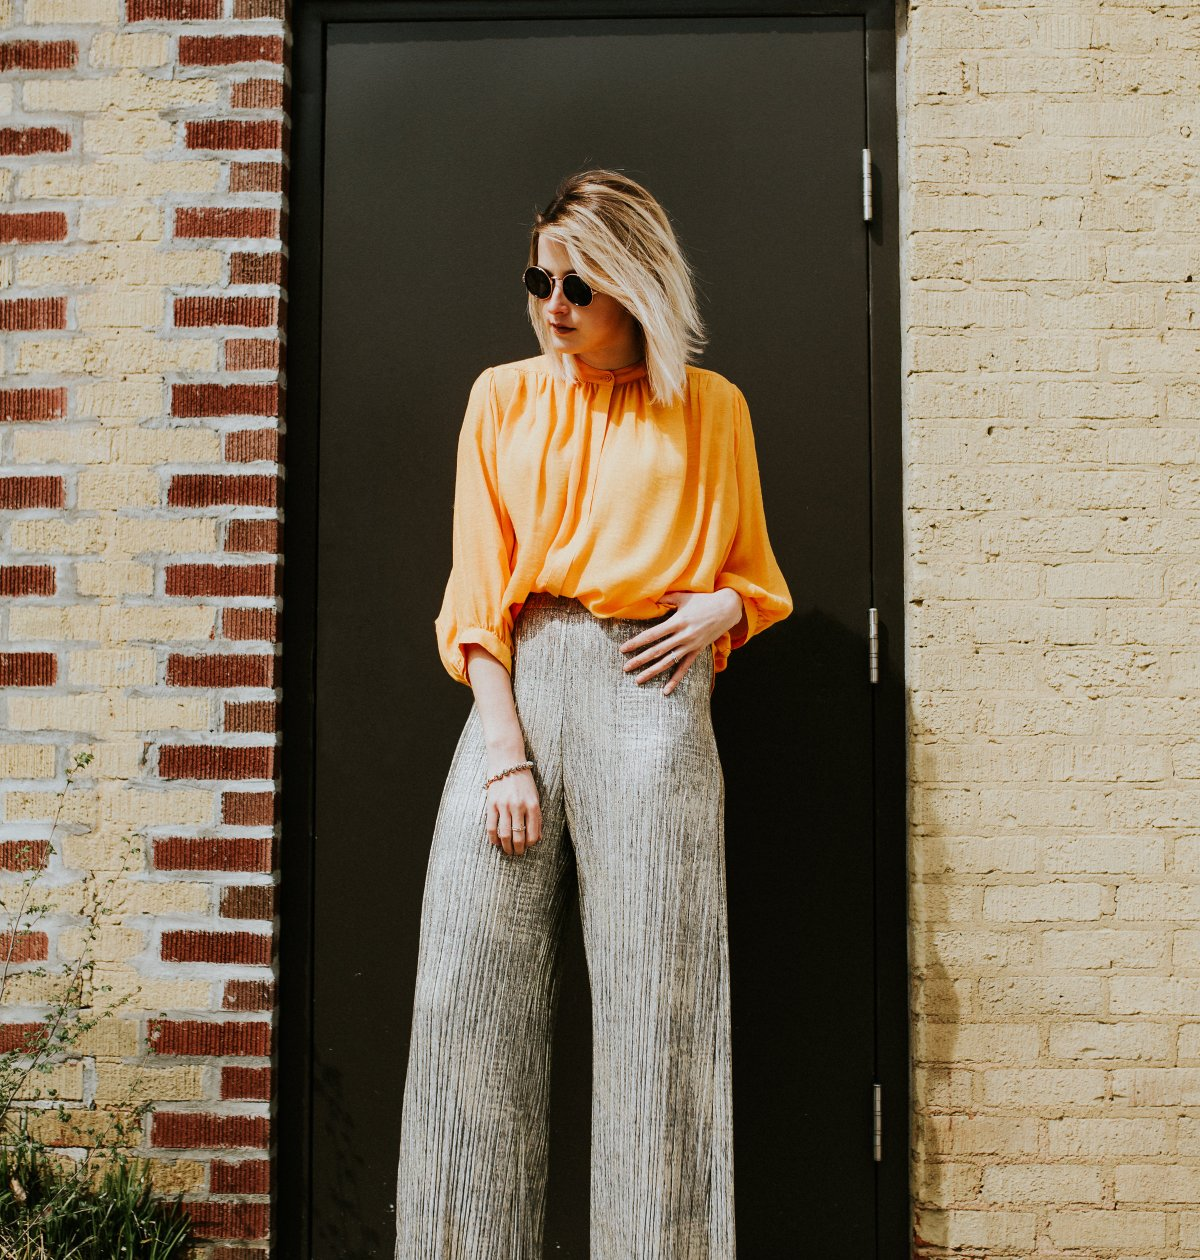 How To Look Like You're Living In The 70's - www.viciloves.com - @viciloves1